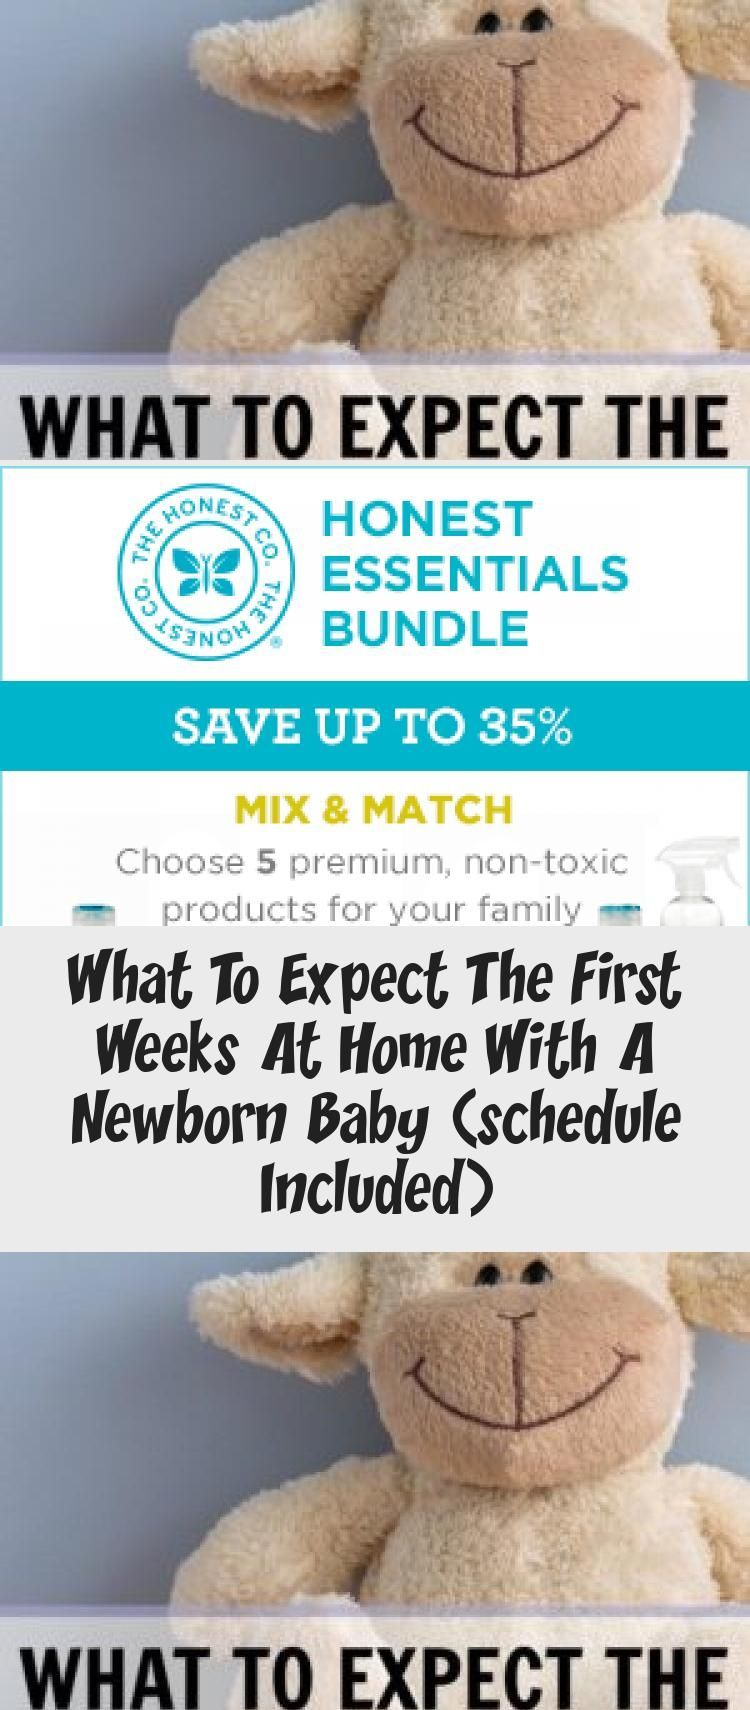 what to expect the first weeks at home with a newborn baby what to expect the first weeks at home with a newborn baby